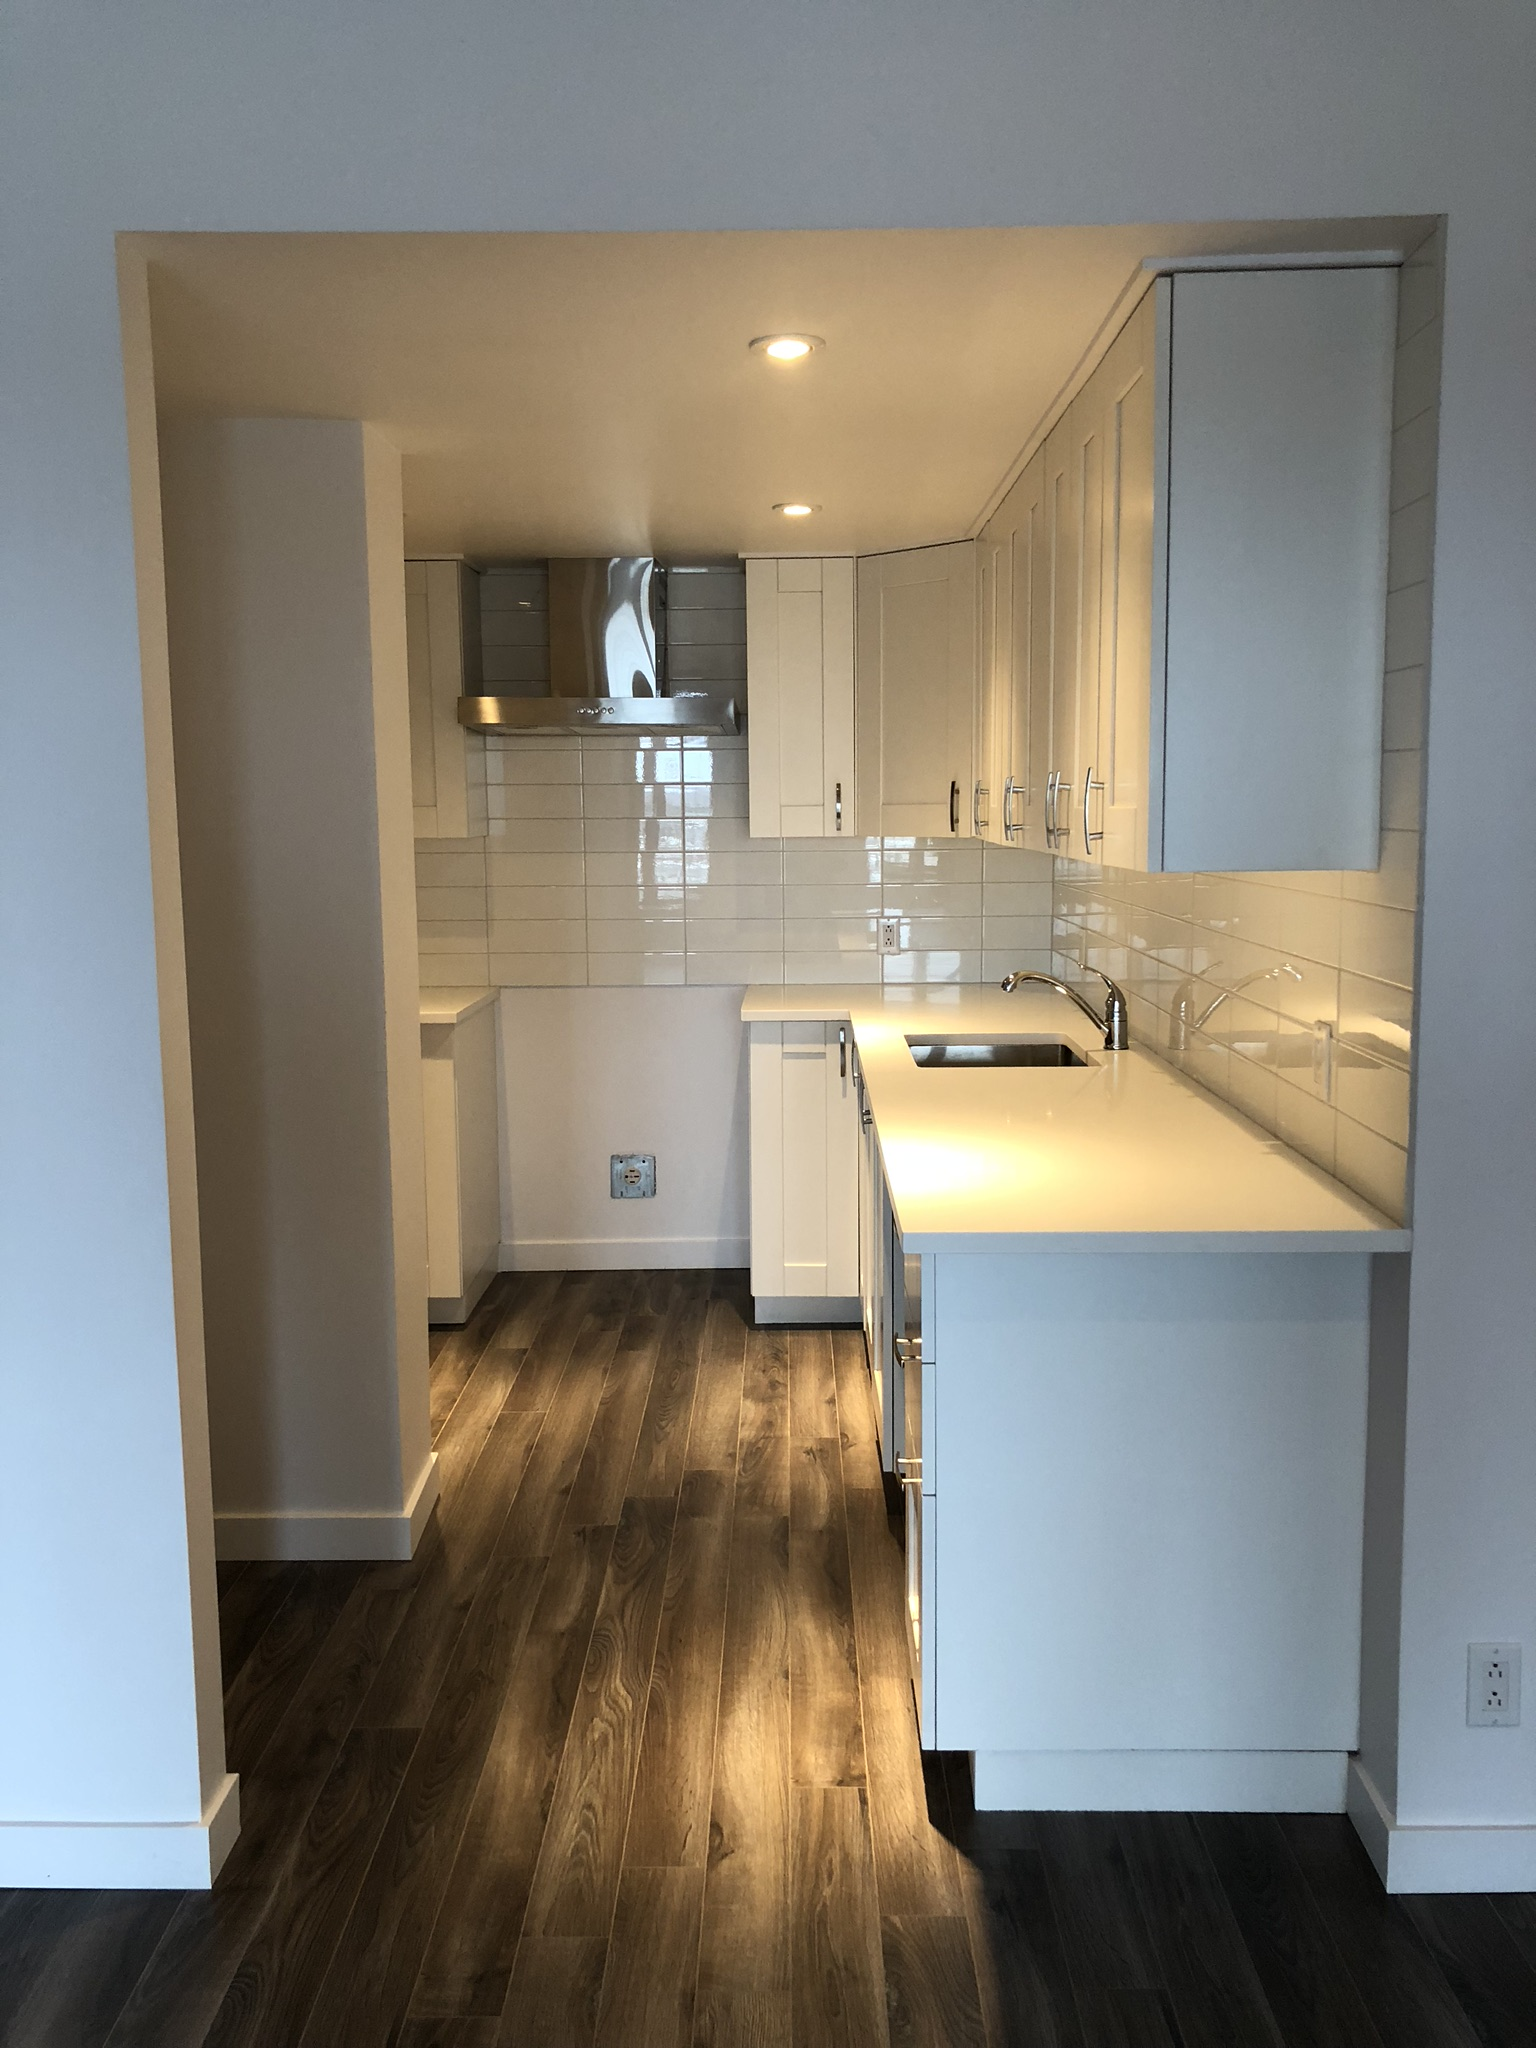 Shillerlavy Renovated 1 Bedroom Apartment On 2 Floors In Old Montreal 252 St Paul East 3